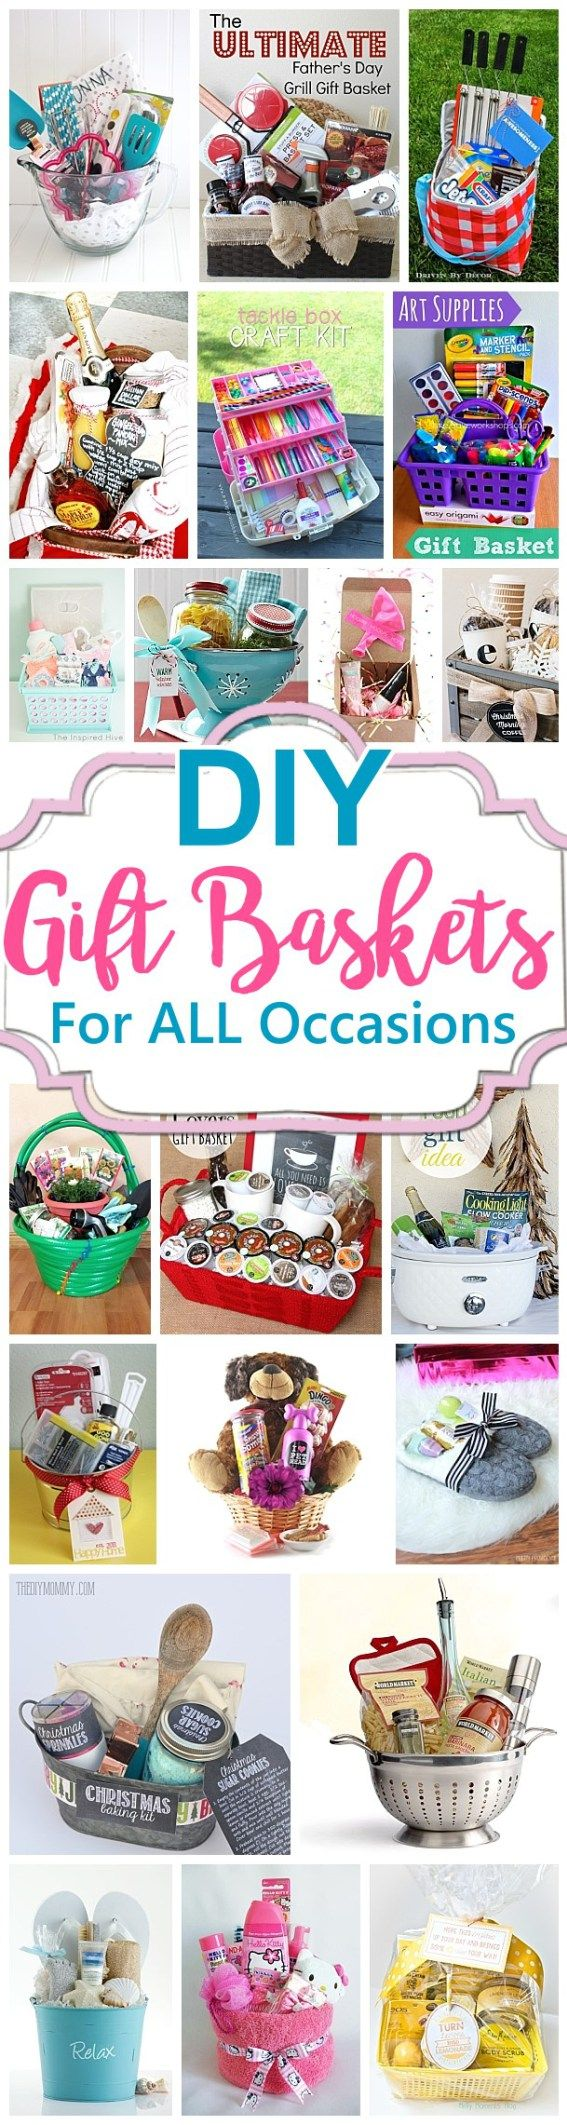 Uncategorized Do It Yourself For Kids 25 unique gift baskets for kids ideas on pinterest teen do it yourself basket any and all occasions